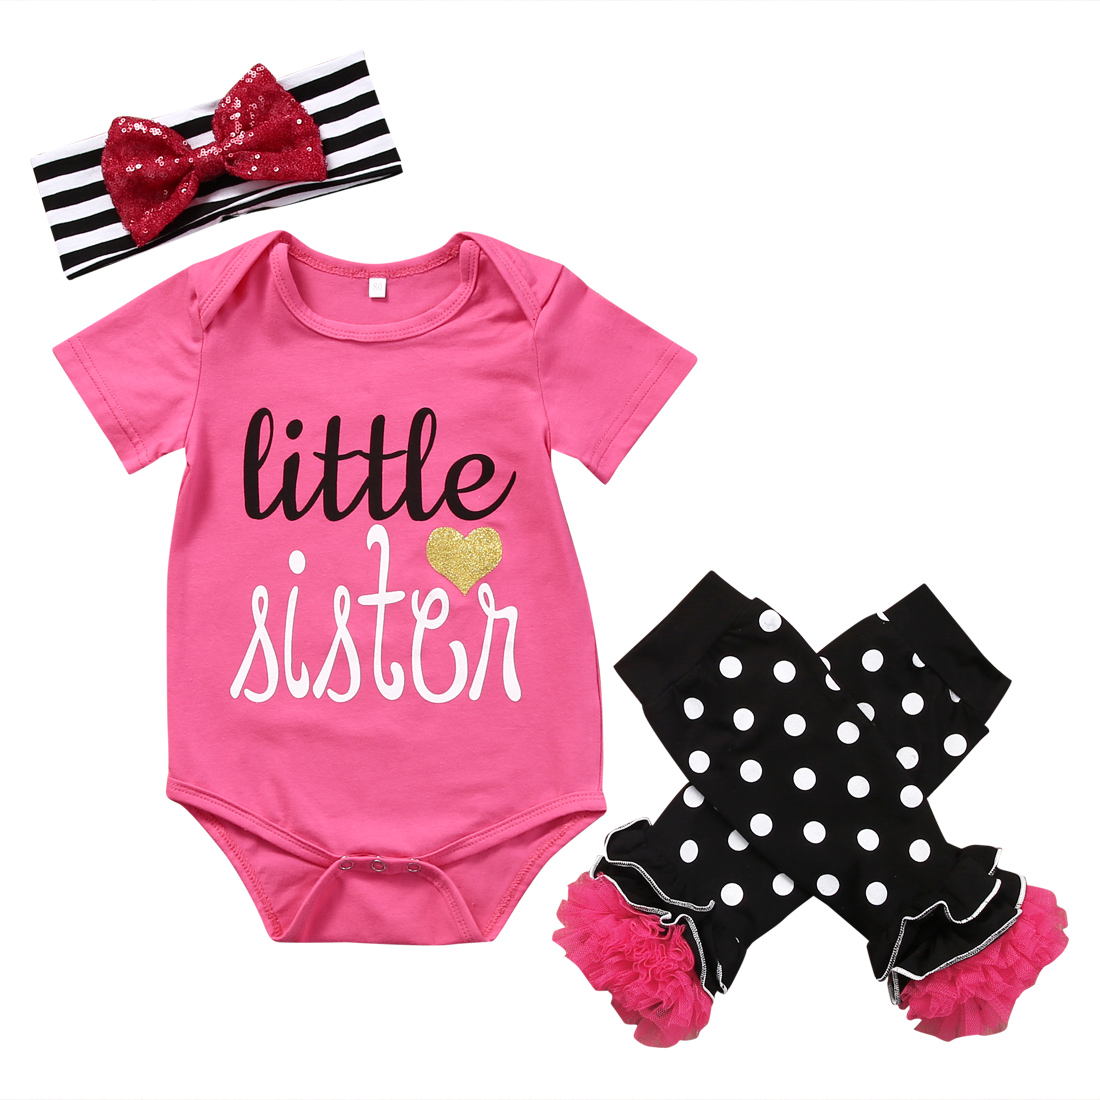 3PCS Set Newborn Baby Girl Clothes Little Sister Romper Jumpsuit+ Leg Warmer+Headband Outfit Bebek Giyim Clothing Outfits 0-24M 2016 new casual baby girl clothes 2pcs autumn clothing set floral hooded top pant outfits newborn bebek giyim 0 24m